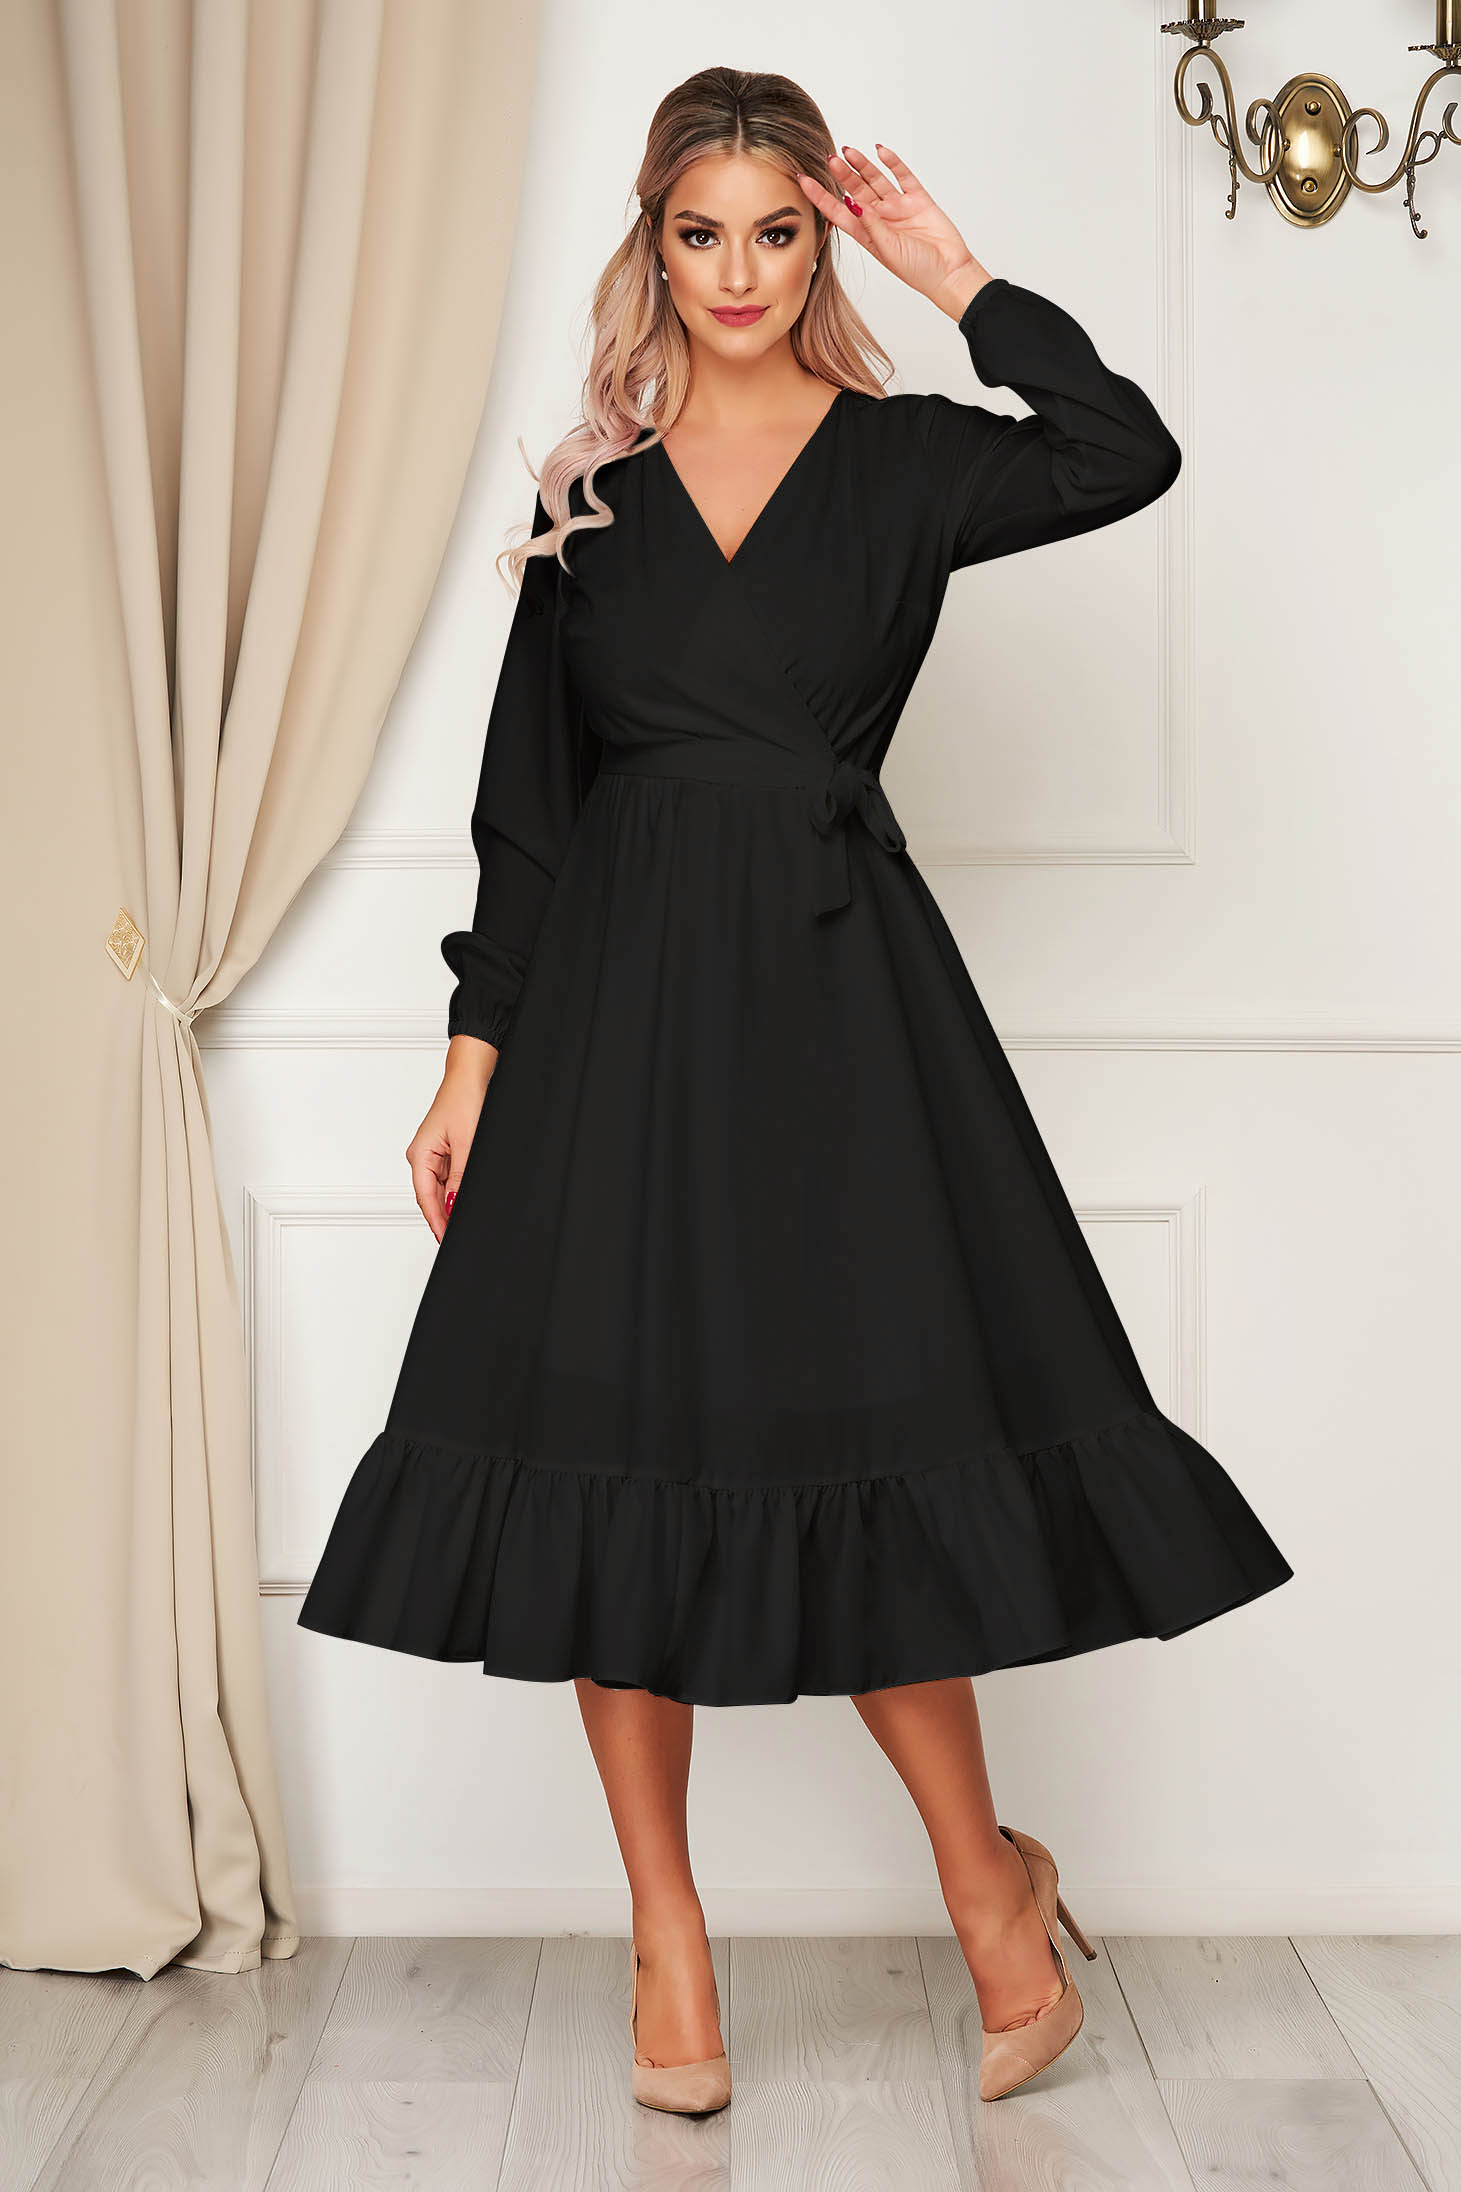 Dress StarShinerS black elegant midi wrap over front with elastic waist accessorized with tied waistband